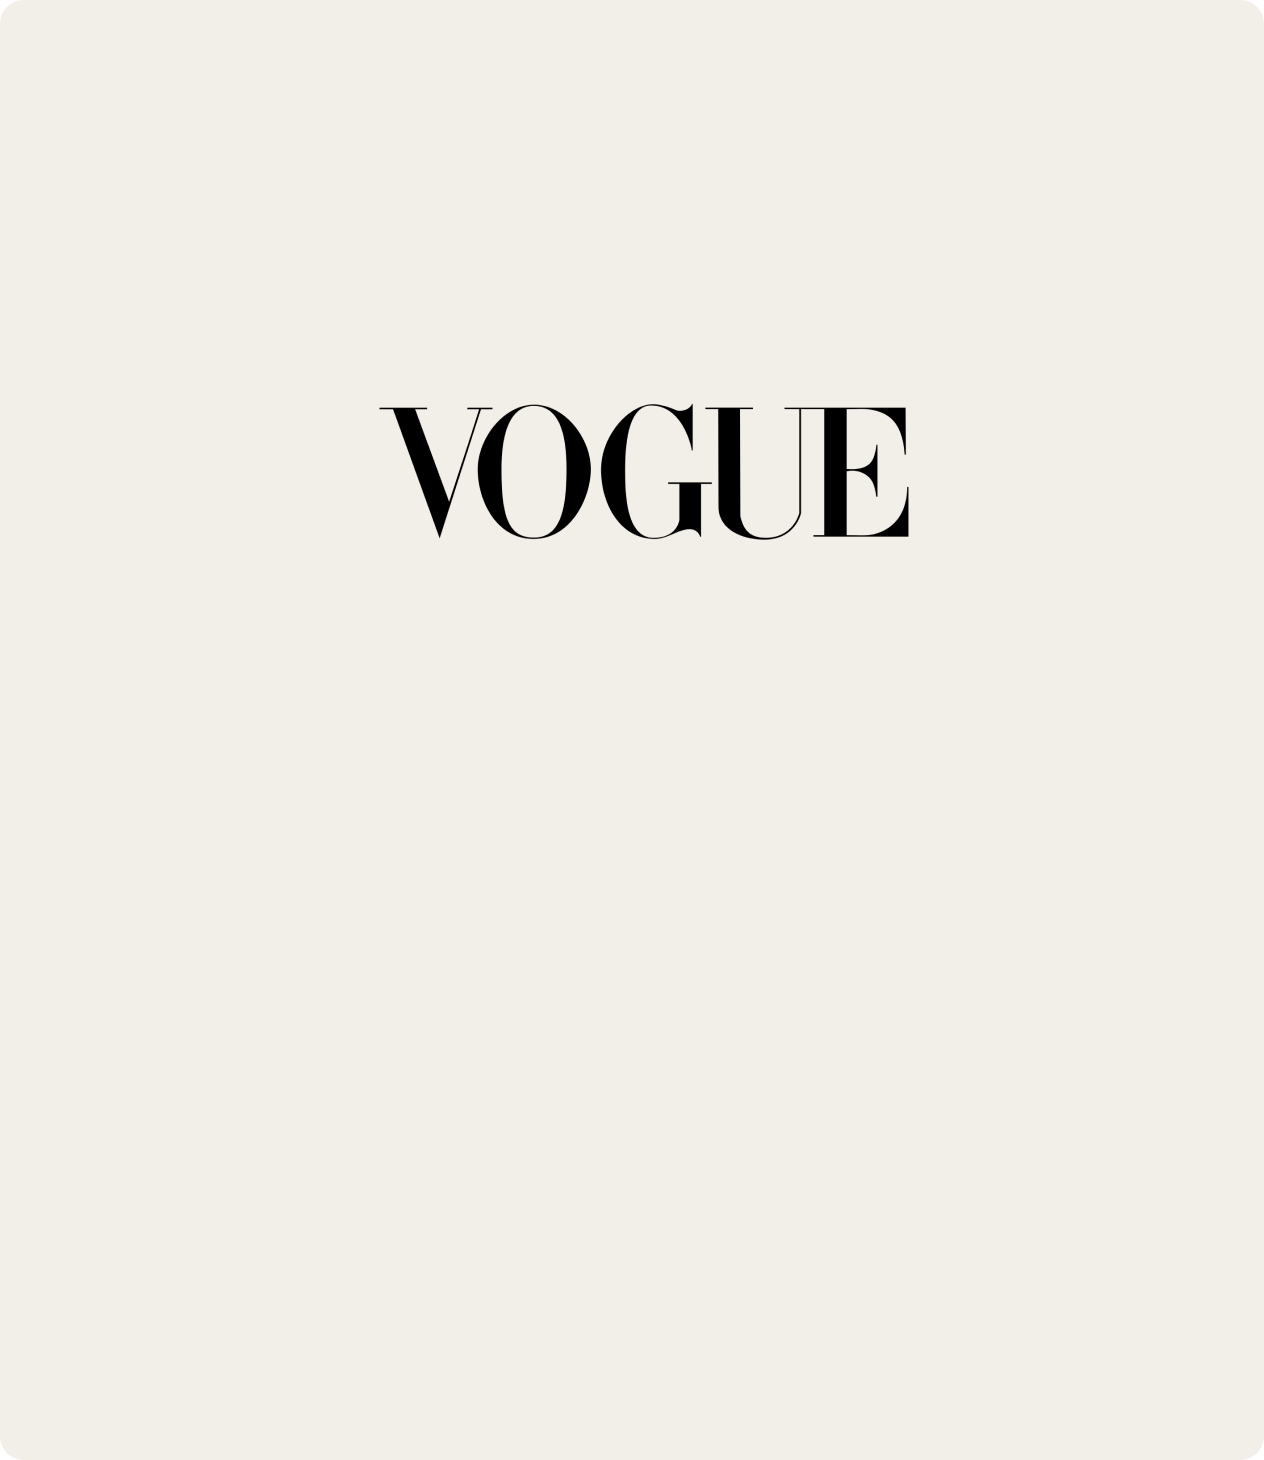 vogue-background